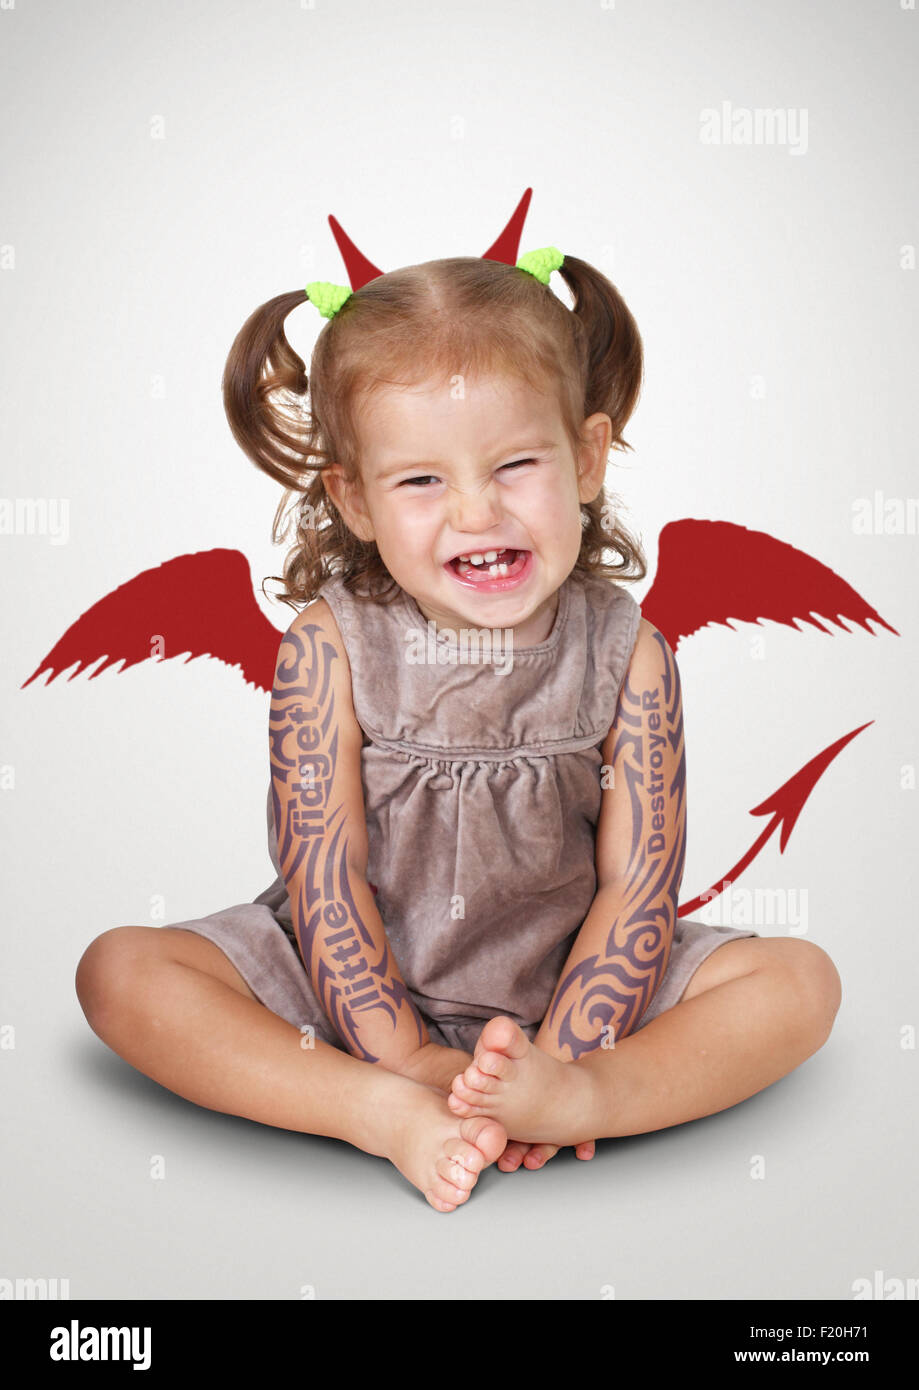 Portrait of bad child with tatoo and devil horns, disobedient baby concept - Stock Image